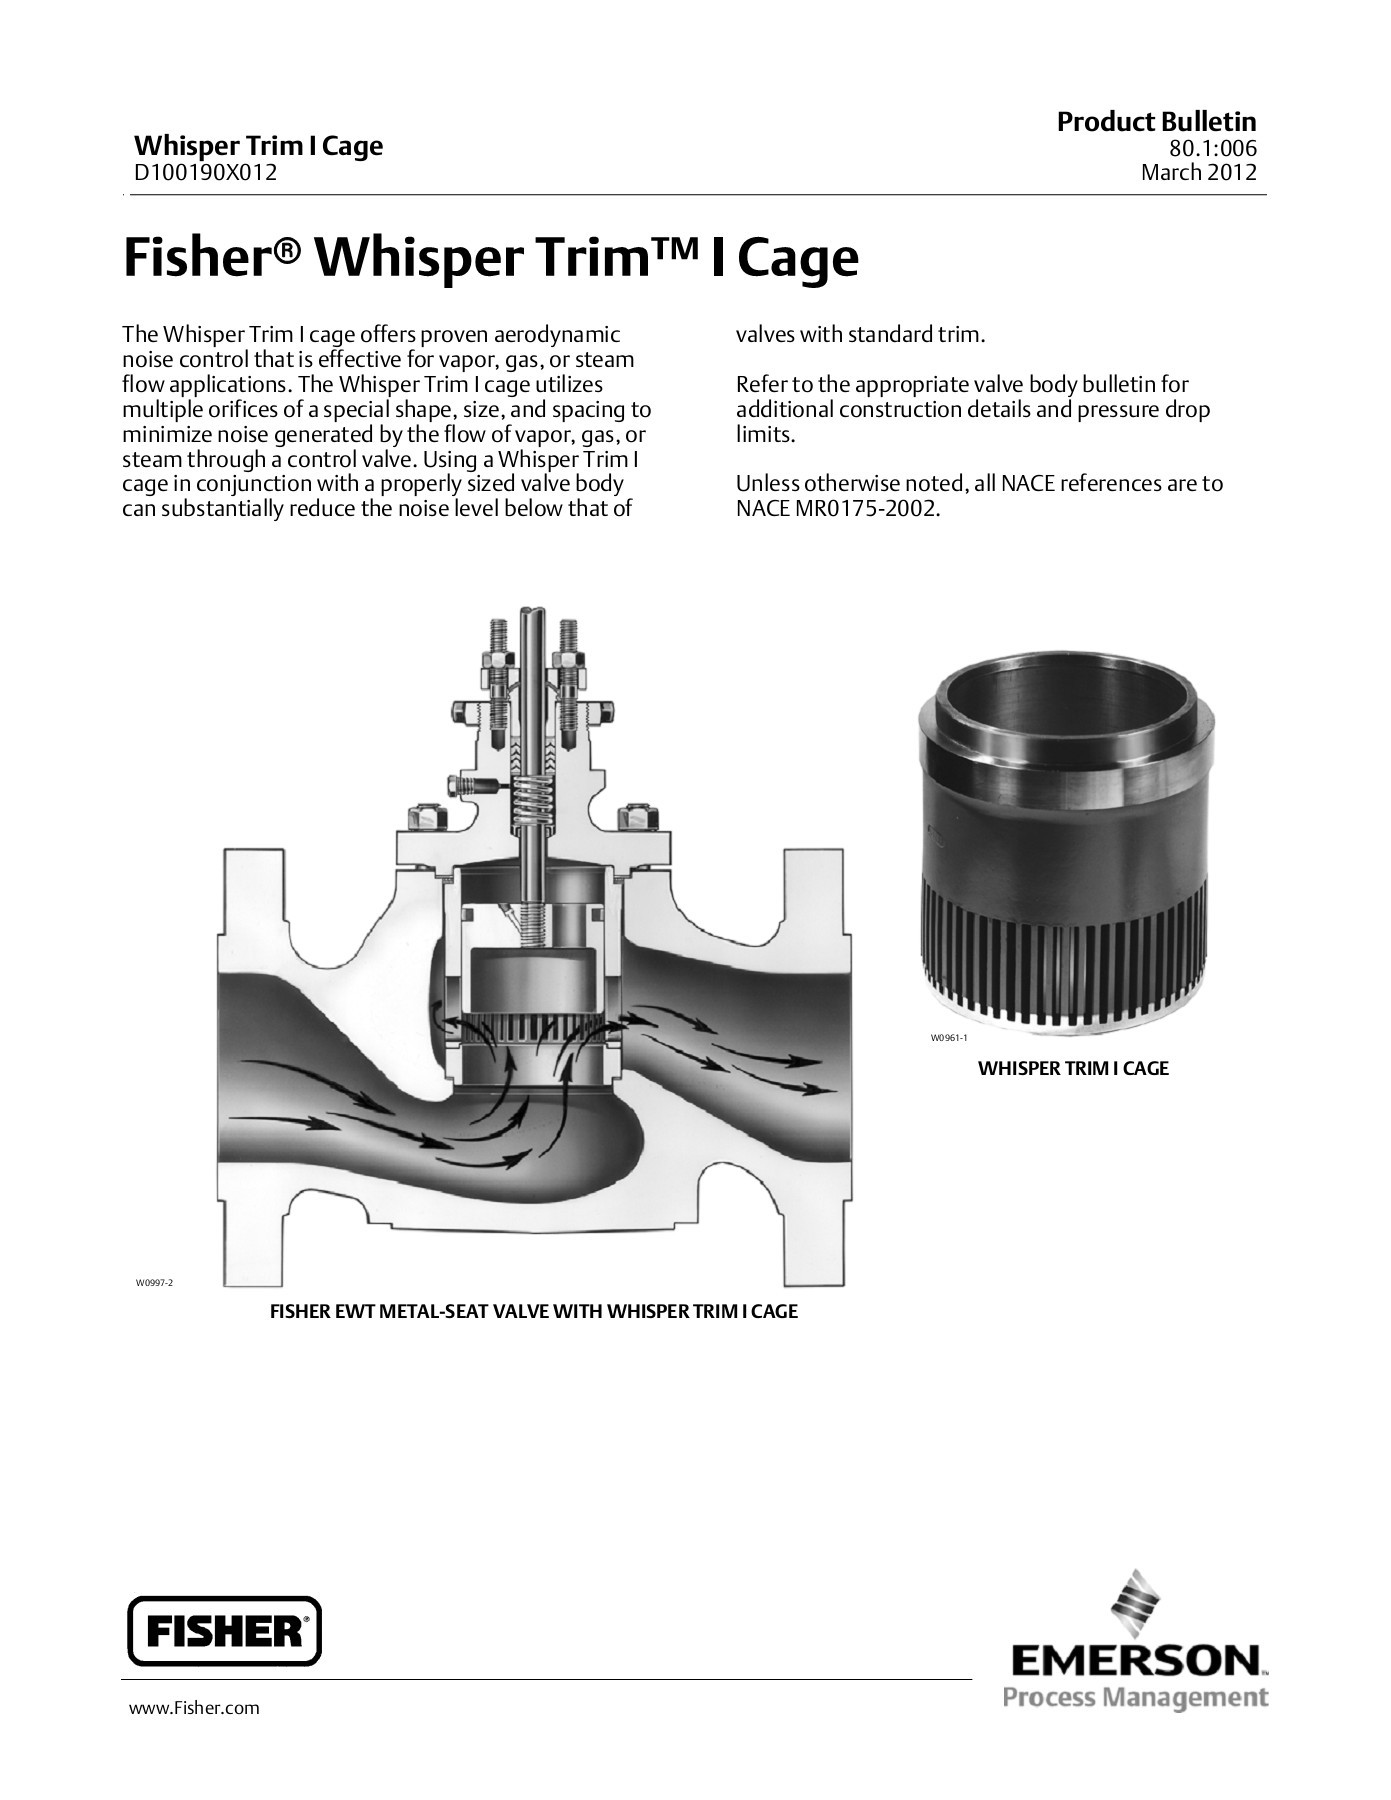 hight resolution of fisherrwhispertrim icage emerson process pages 1 4 text rh fliphtml5 com fisher diagram mammal irvin fisher